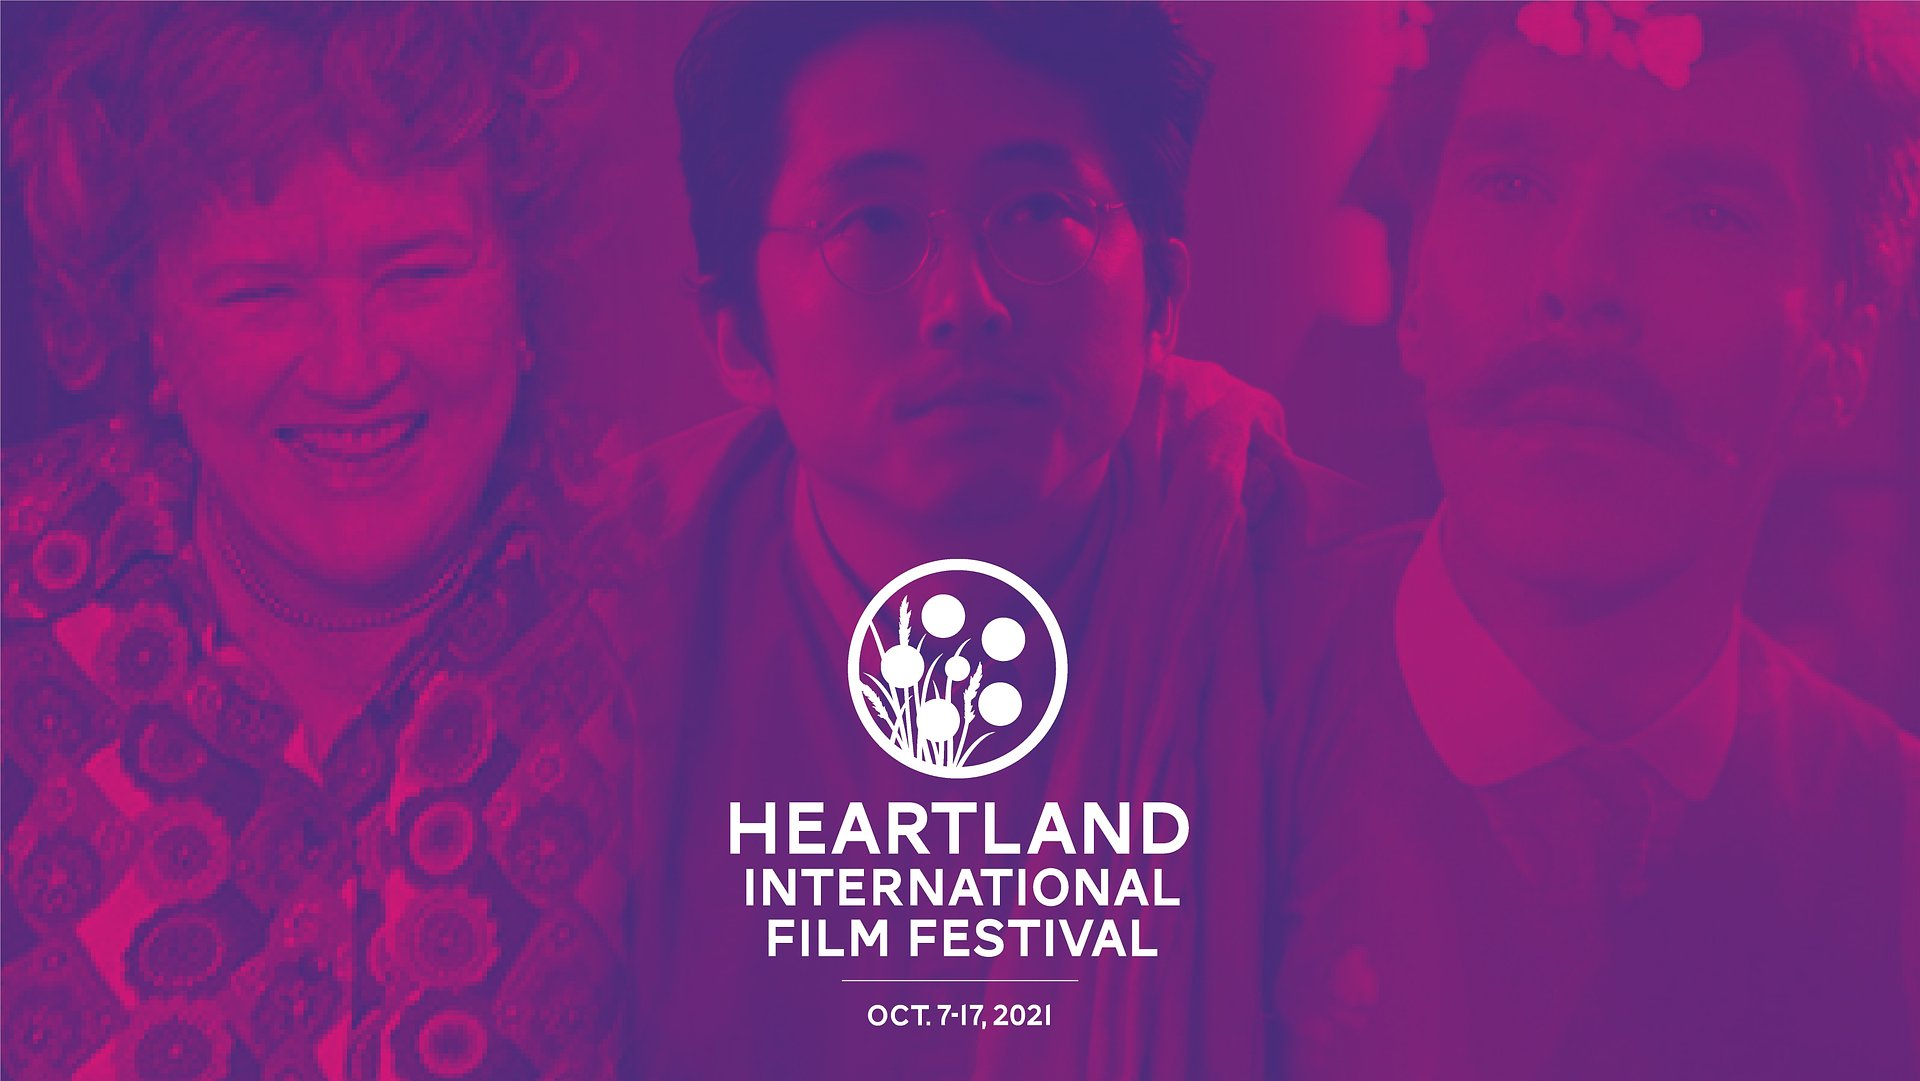 HEARTLAND INTERNATIONAL FILM FESTIVAL ANNOUNCES FIRST SLATE OF STAR-STUDDED EVENT FILMS FOR 30TH ANNIVERSARY EDITION